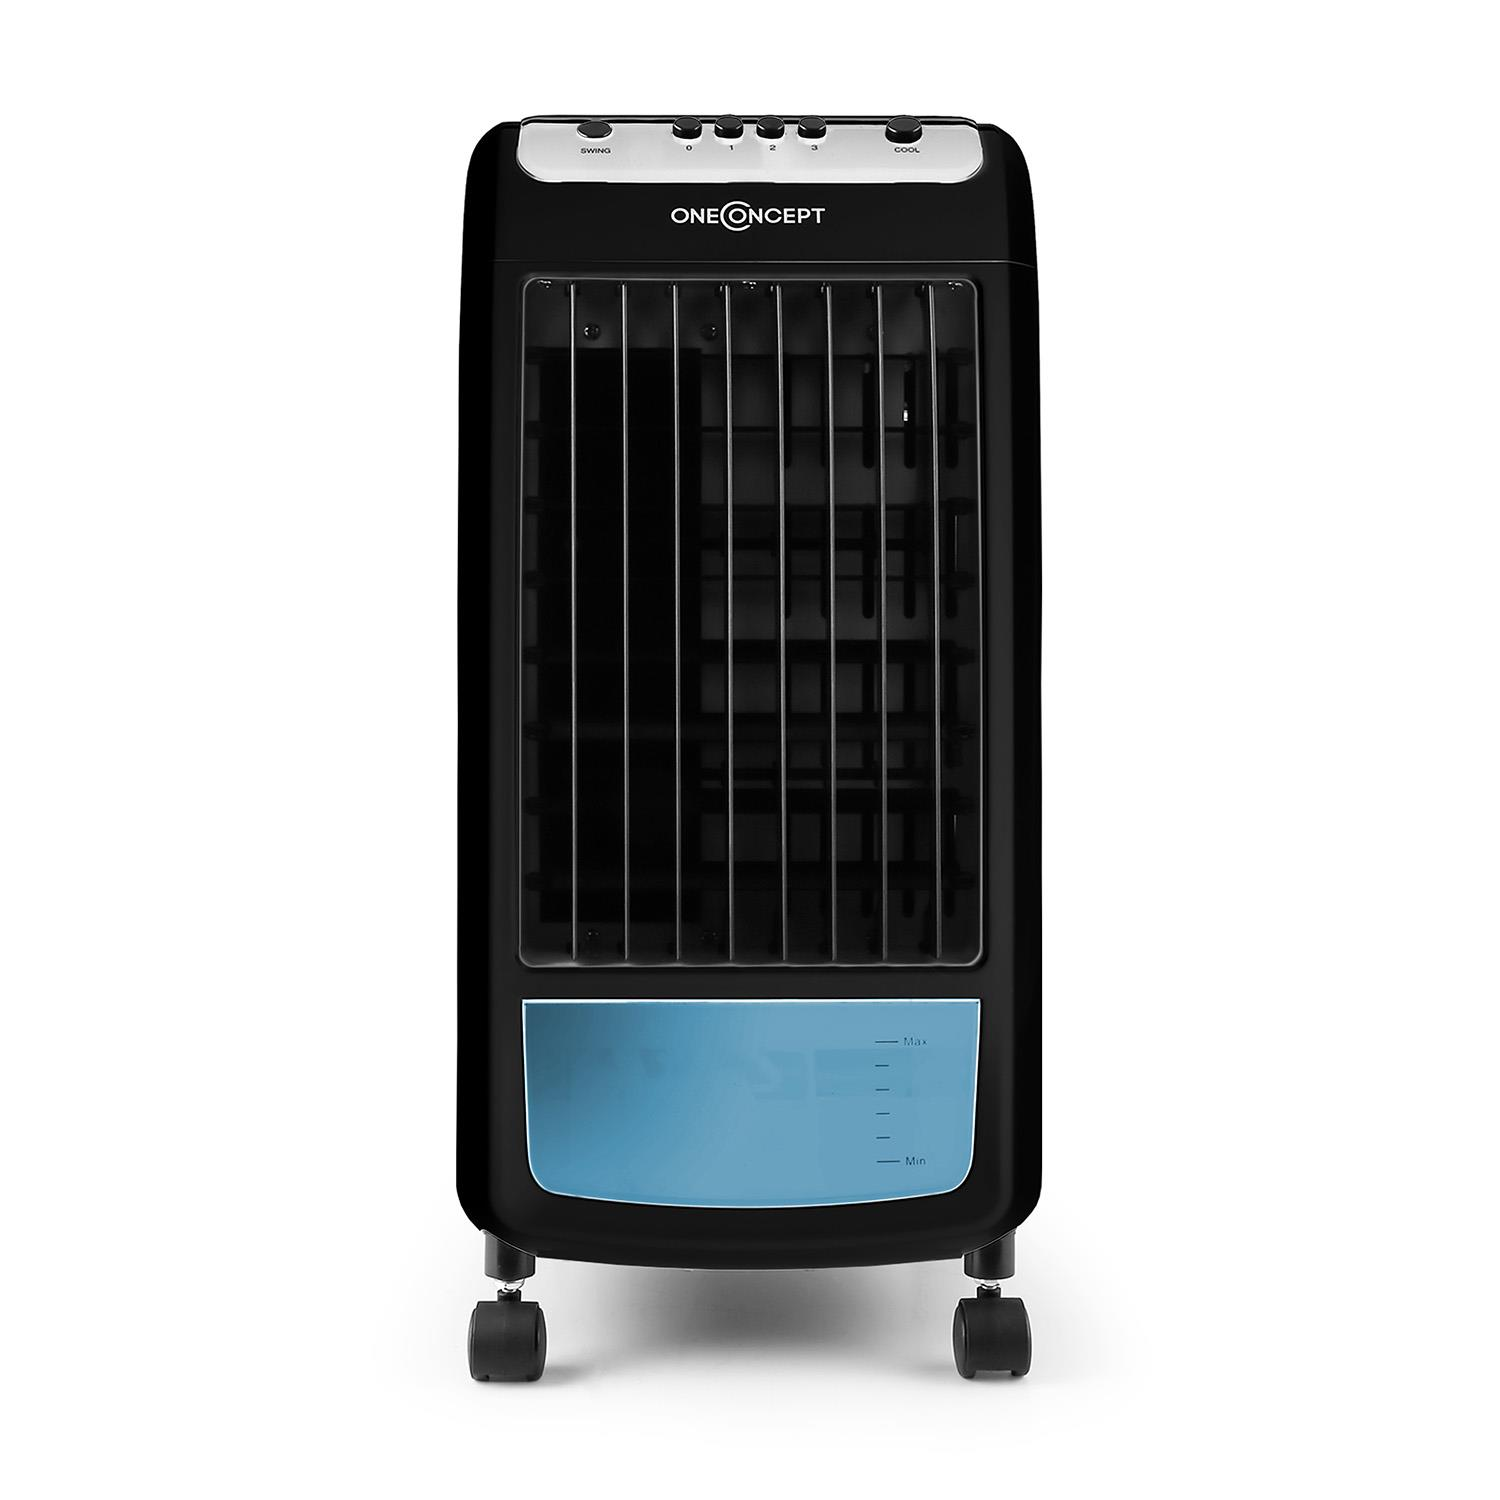 #3D728E * PORTABLE 3 IN 1 WATER & ICE AIR EVAPORATING COOLING  Brand New 5901 Portable Cooling Systems images with 1500x1500 px on helpvideos.info - Air Conditioners, Air Coolers and more